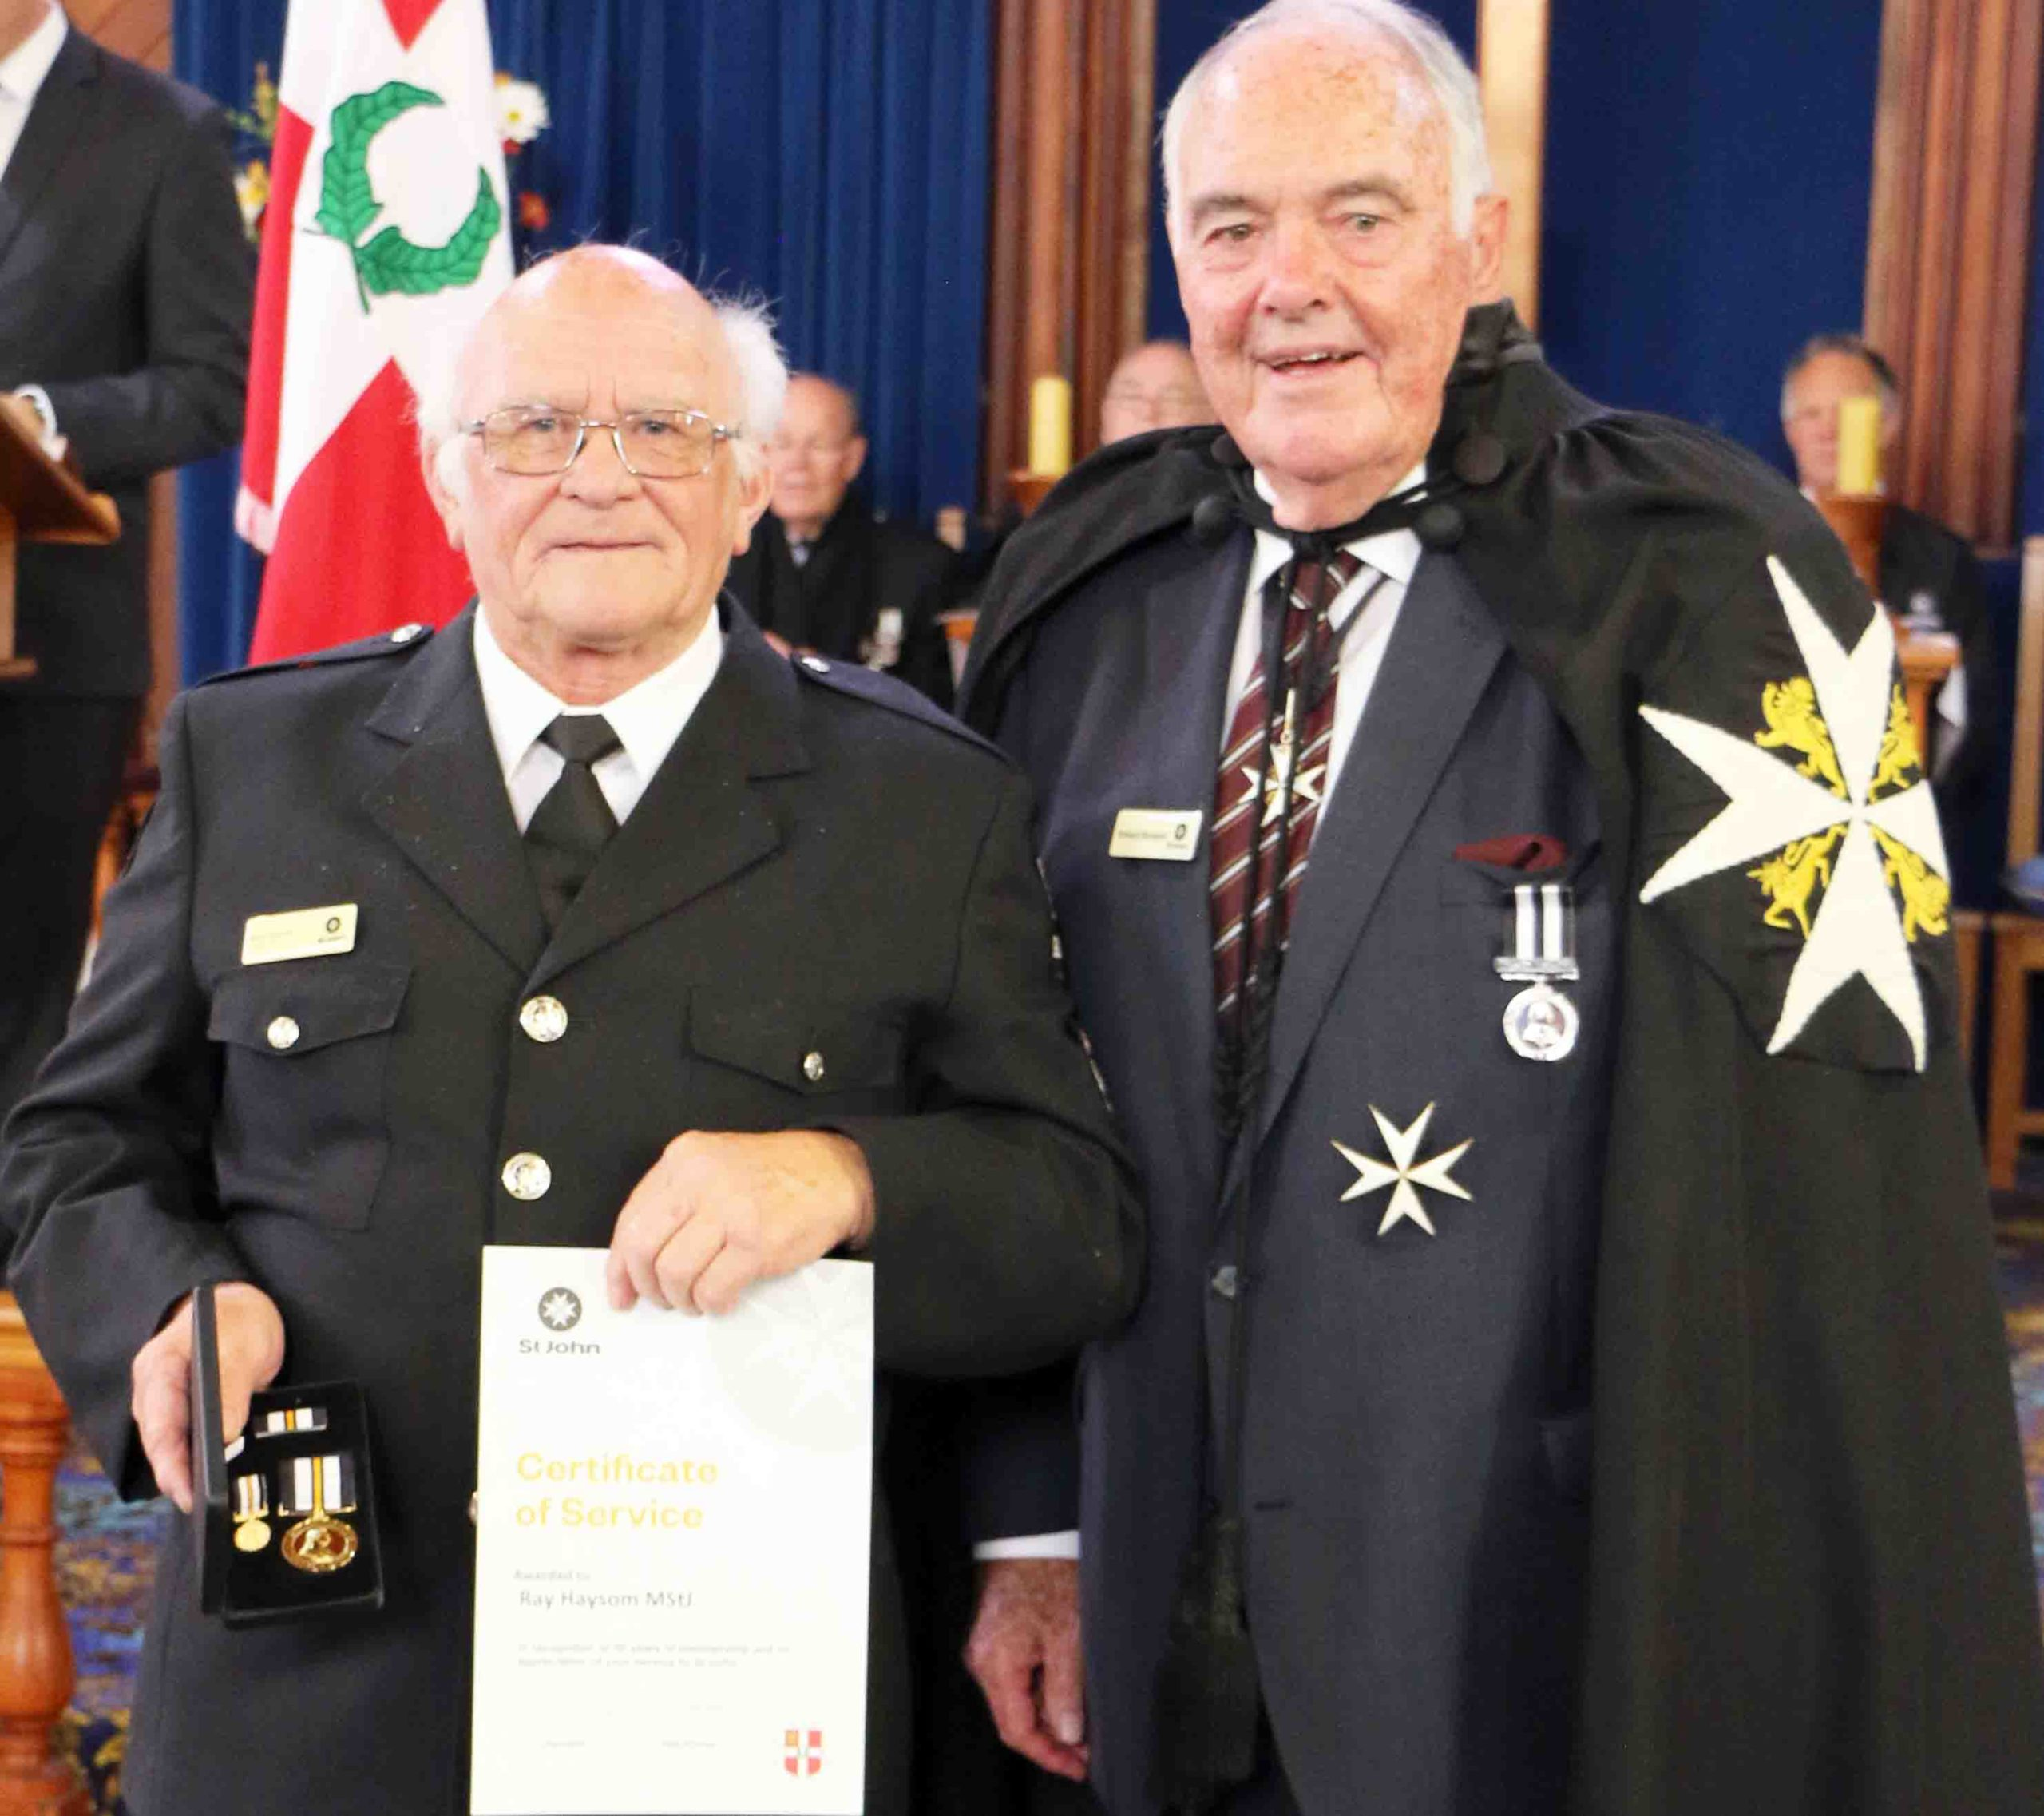 You are currently viewing Long-serving Hauraki-Coromandel St John officers honoured